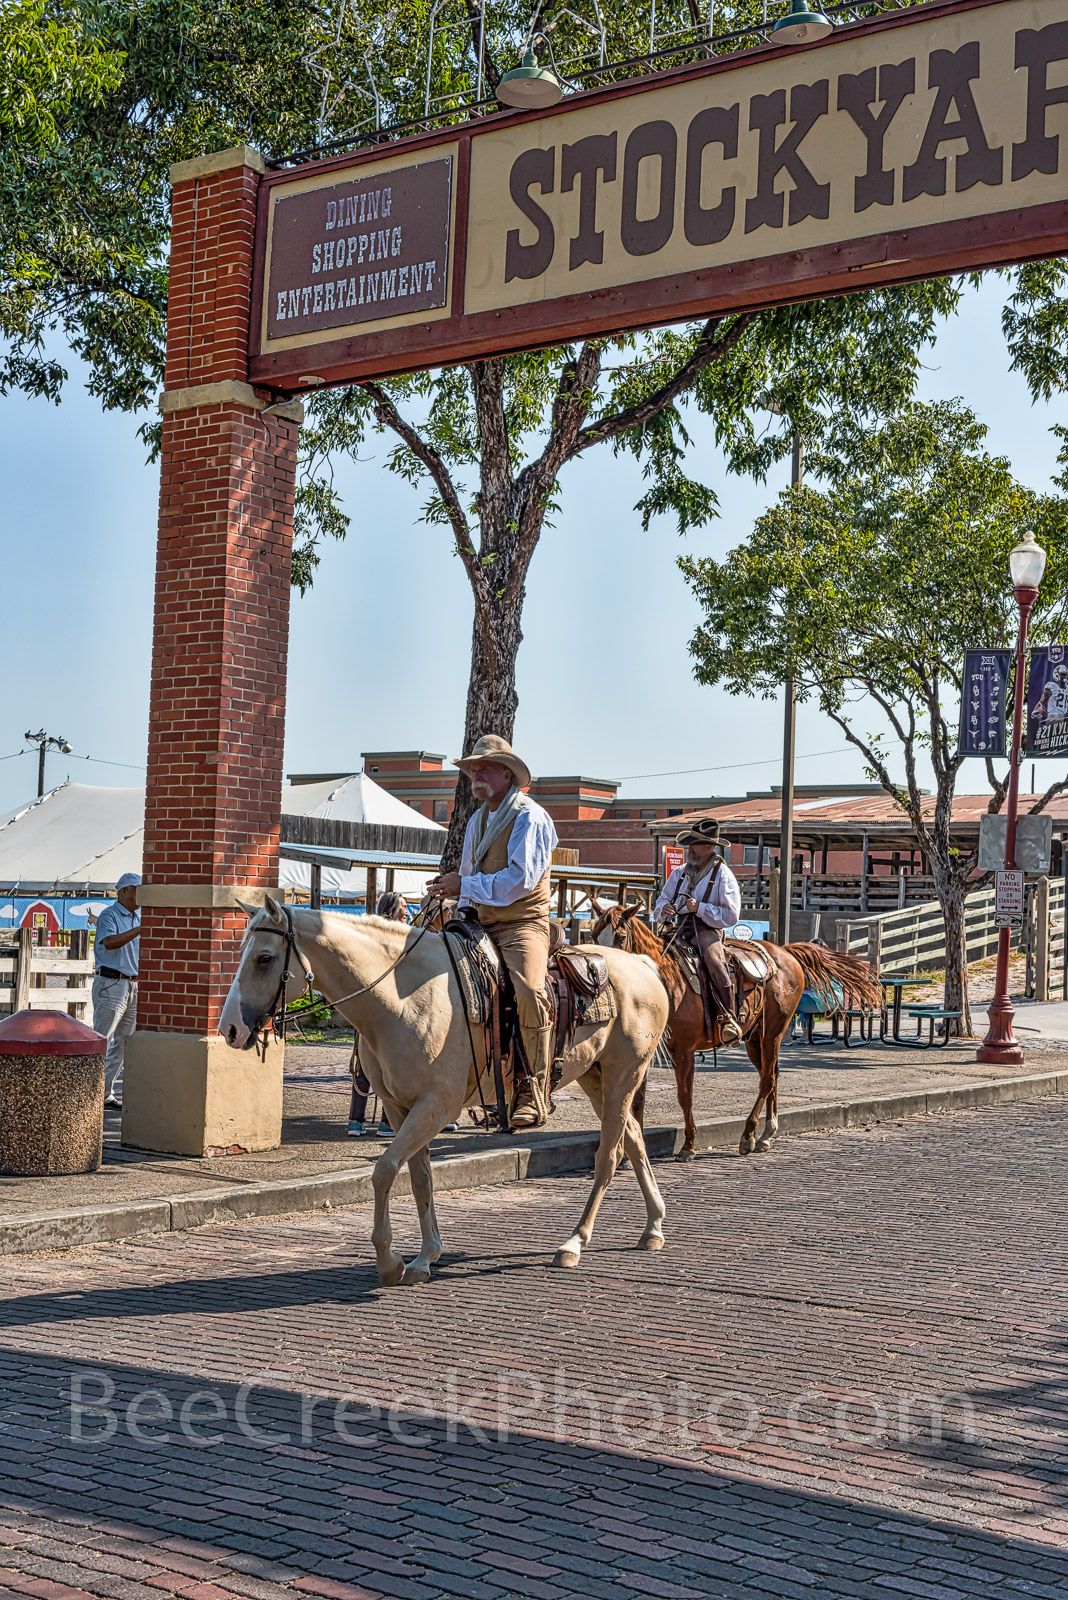 Stockyard and Cowboys - A couple of cowboys riding their horses at the Stockyard in Fort Worth Texas. They were just...